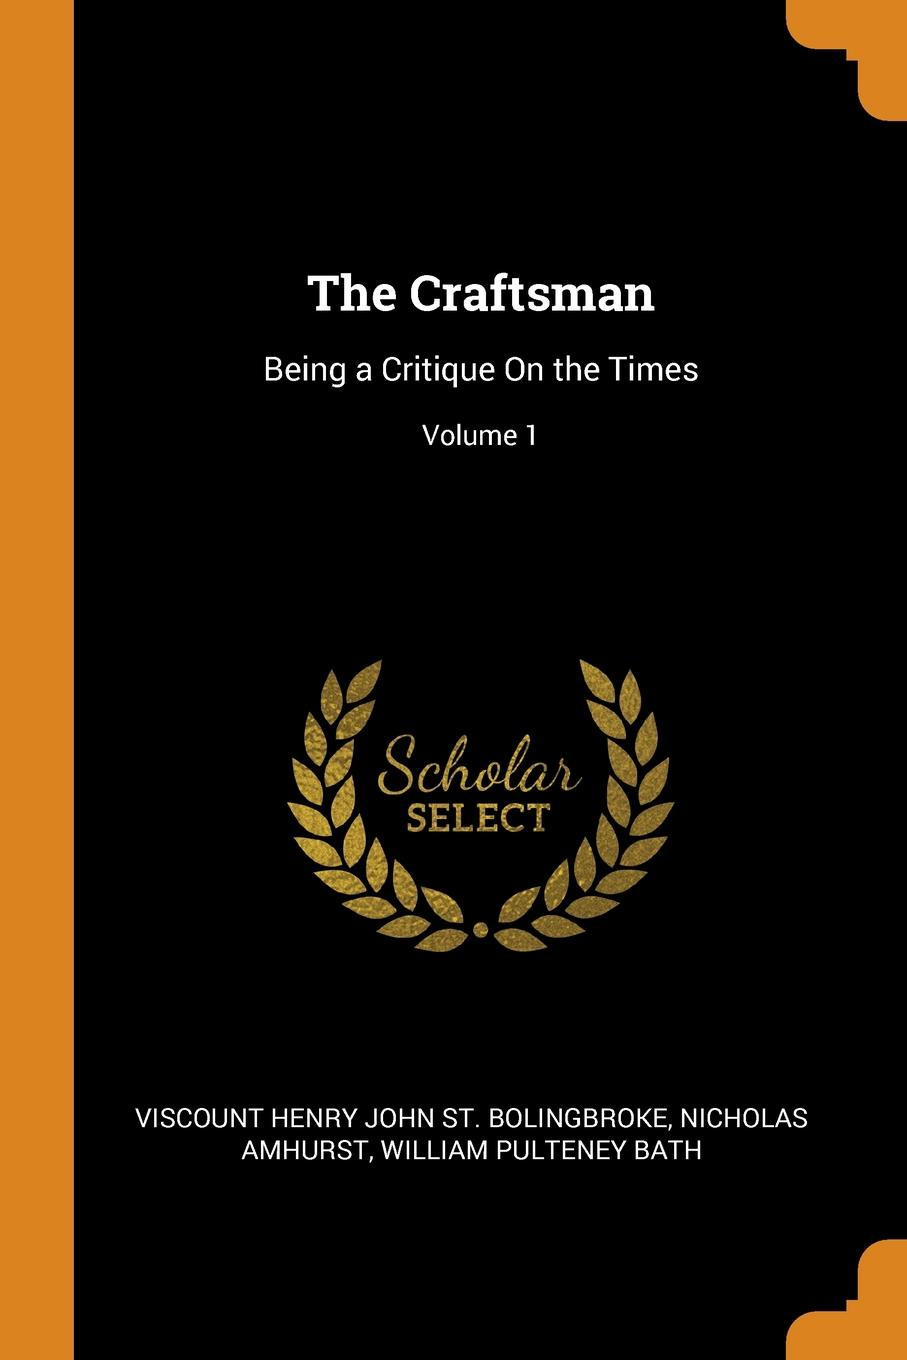 Viscount Henry John St. Bolingbroke, Nicholas Amhurst, William Pulteney Bath The Craftsman. Being a Critique On the Times; Volume 1